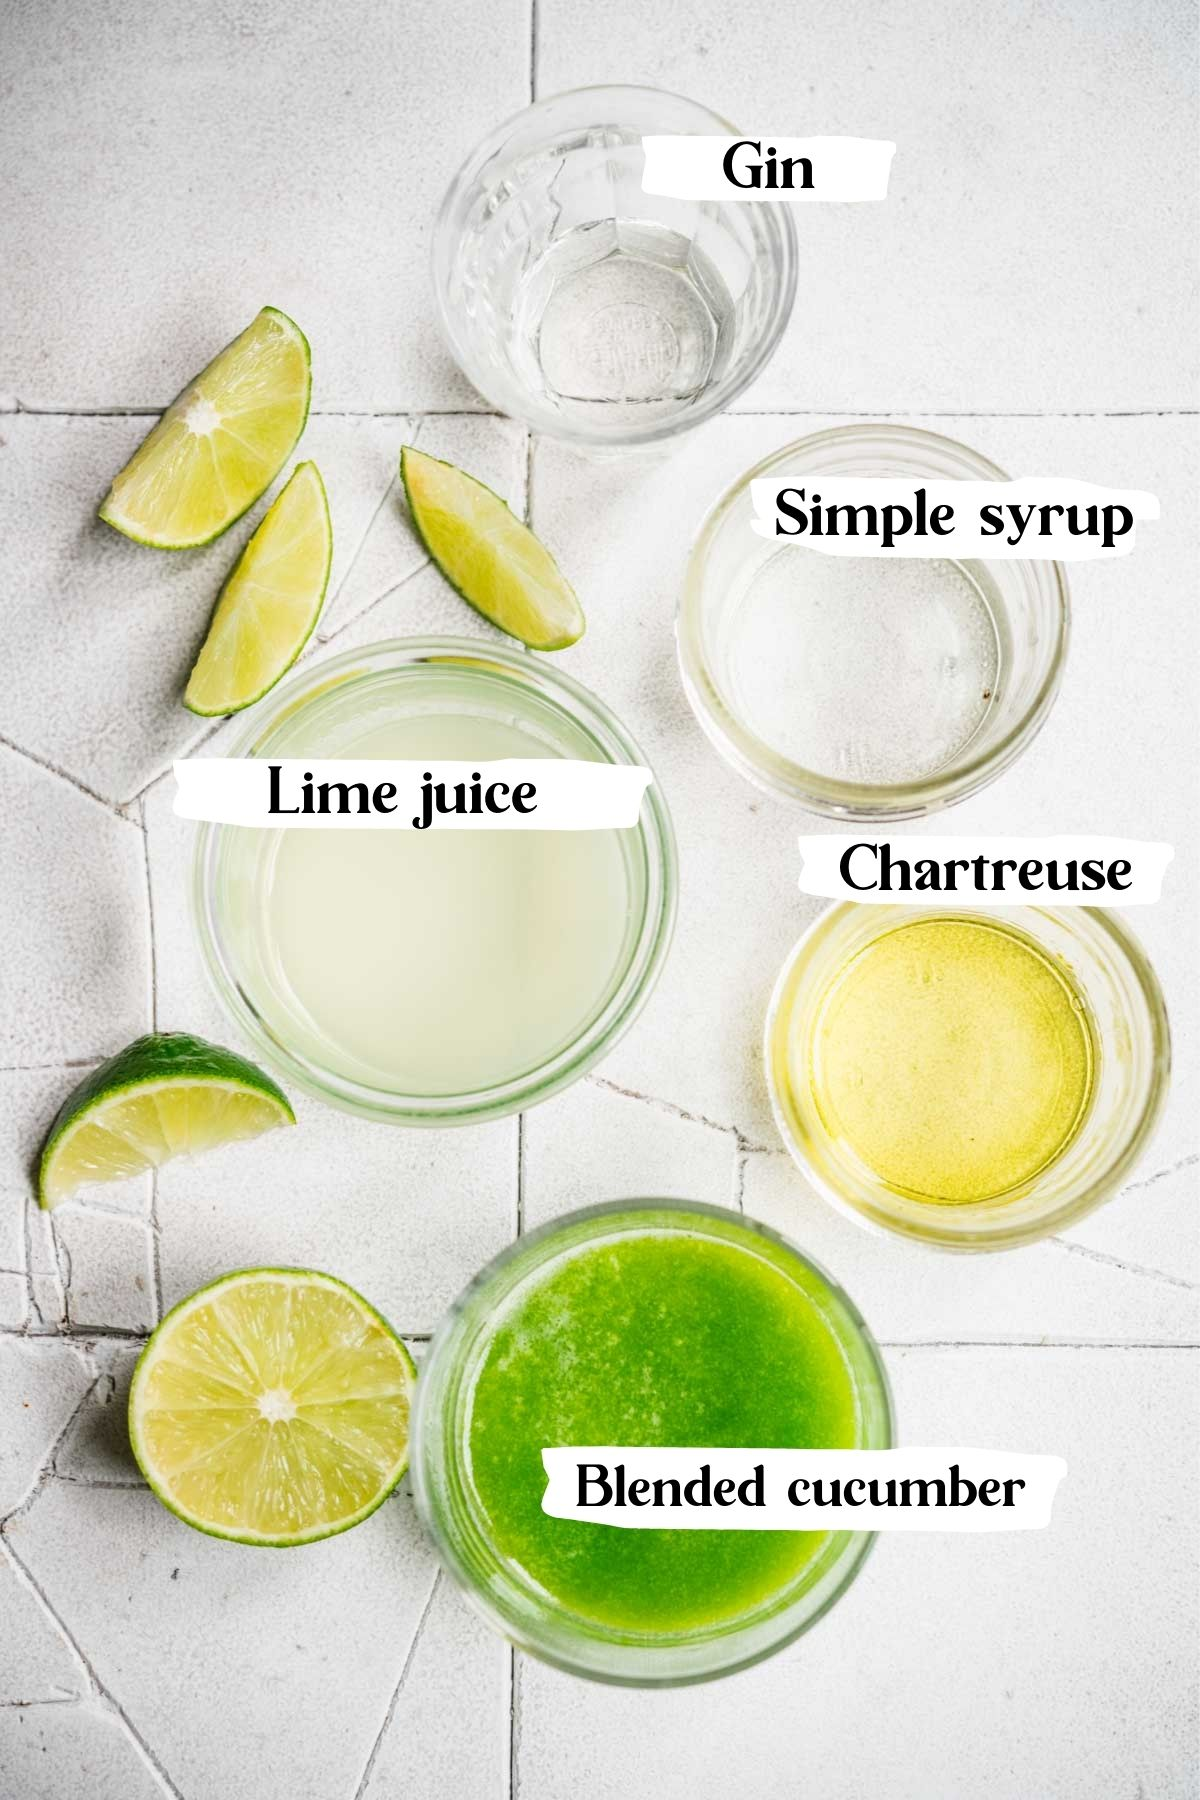 Shot of cucumber lime cocktail ingredients - lime juice, blended cucumber, chartreuse, gin, simple syrup.